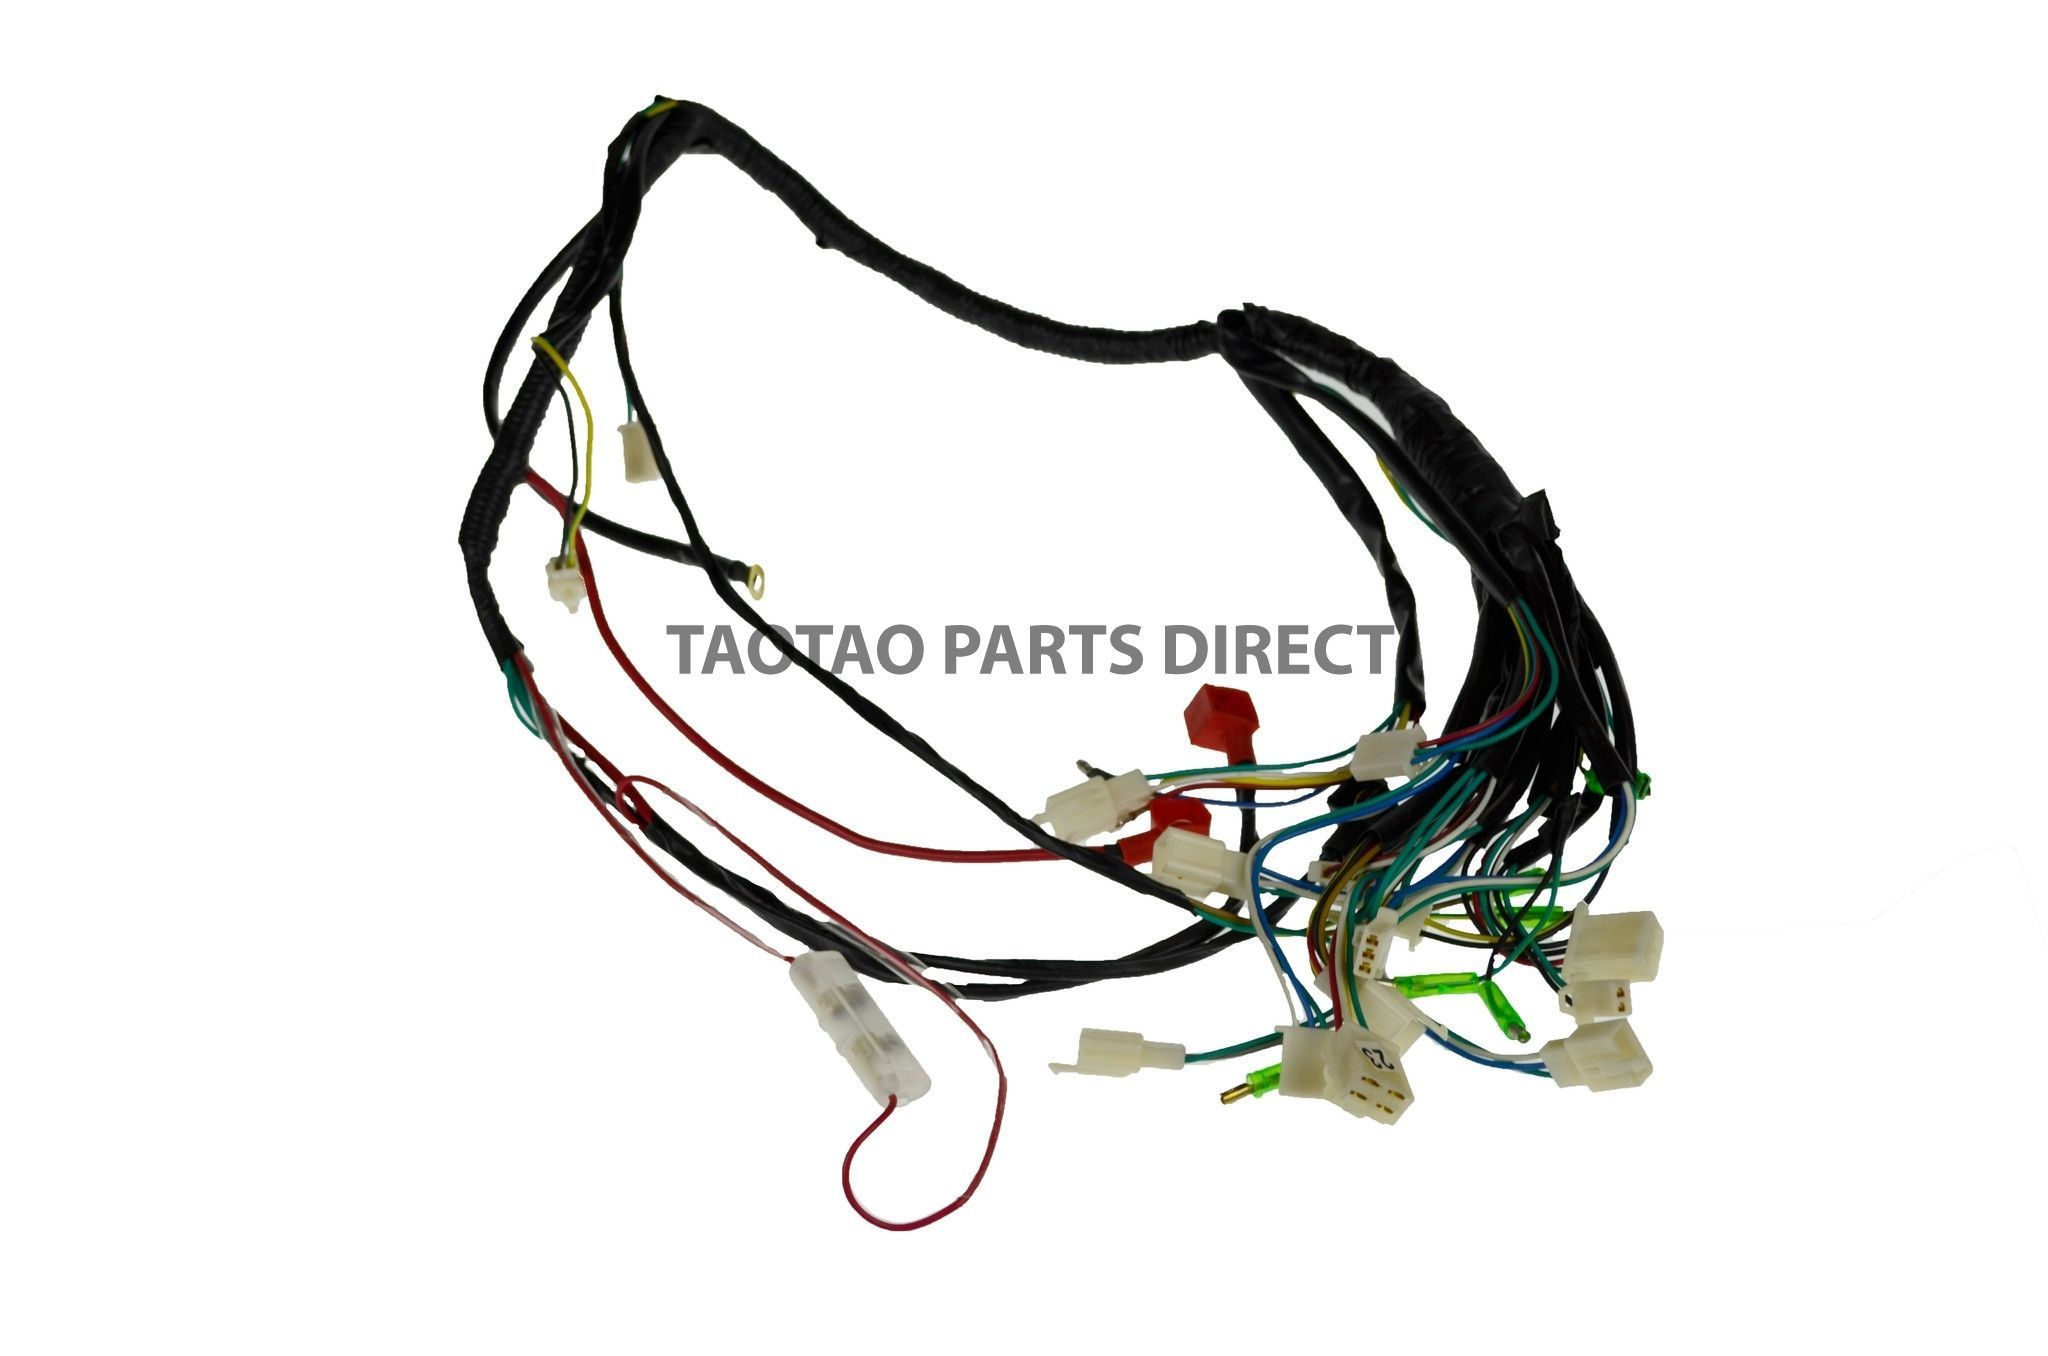 furuno 30 meter signal cable assembly f 1622 1712 wire harnessing cable wire electronics gadgets [ 2048 x 1356 Pixel ]